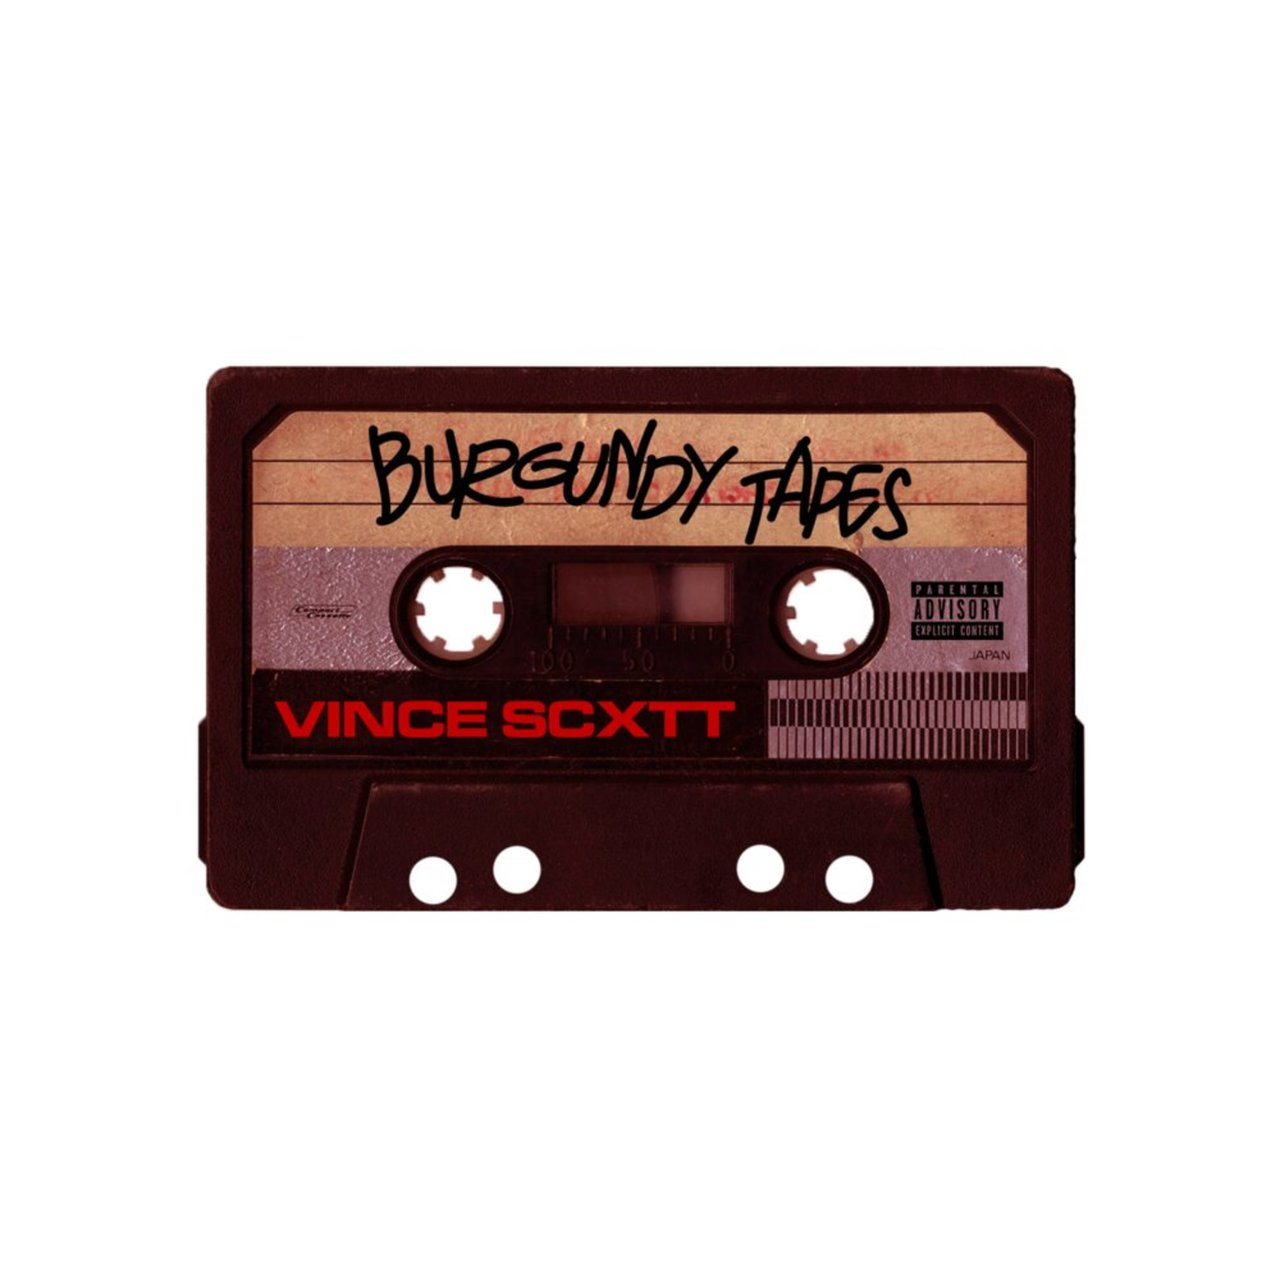 Burgundy Tapes